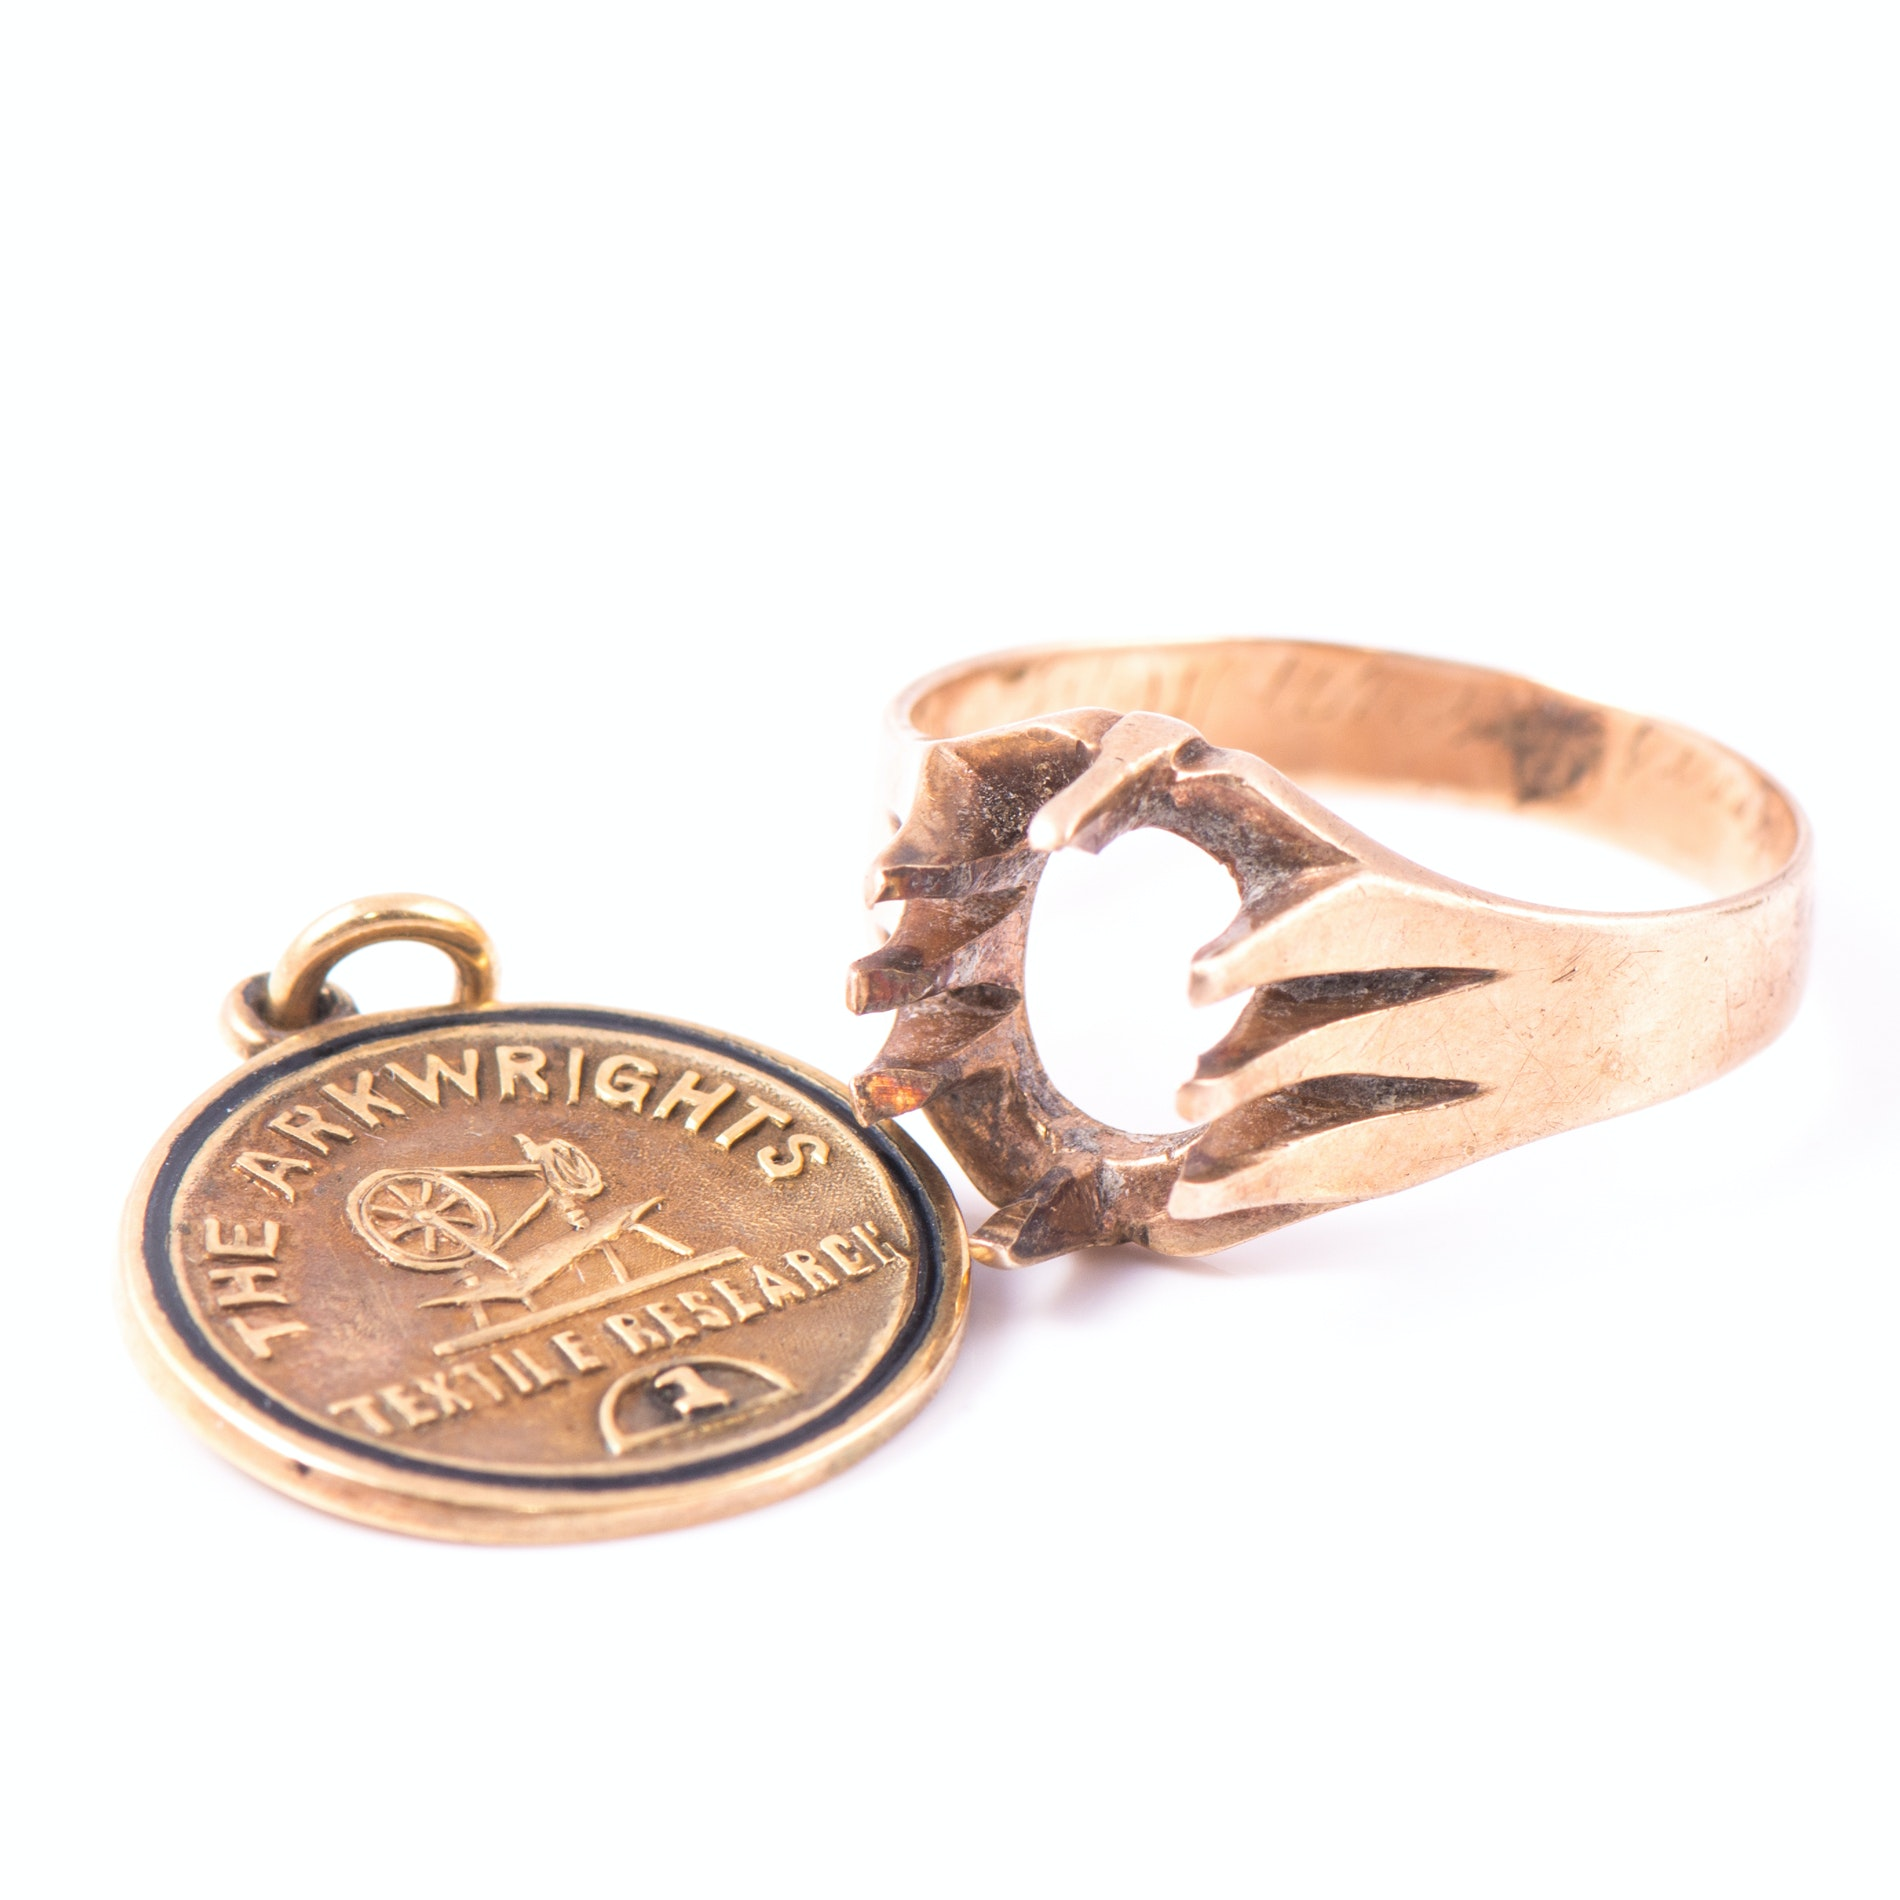 10K Gold Pendant and Ring Mounting